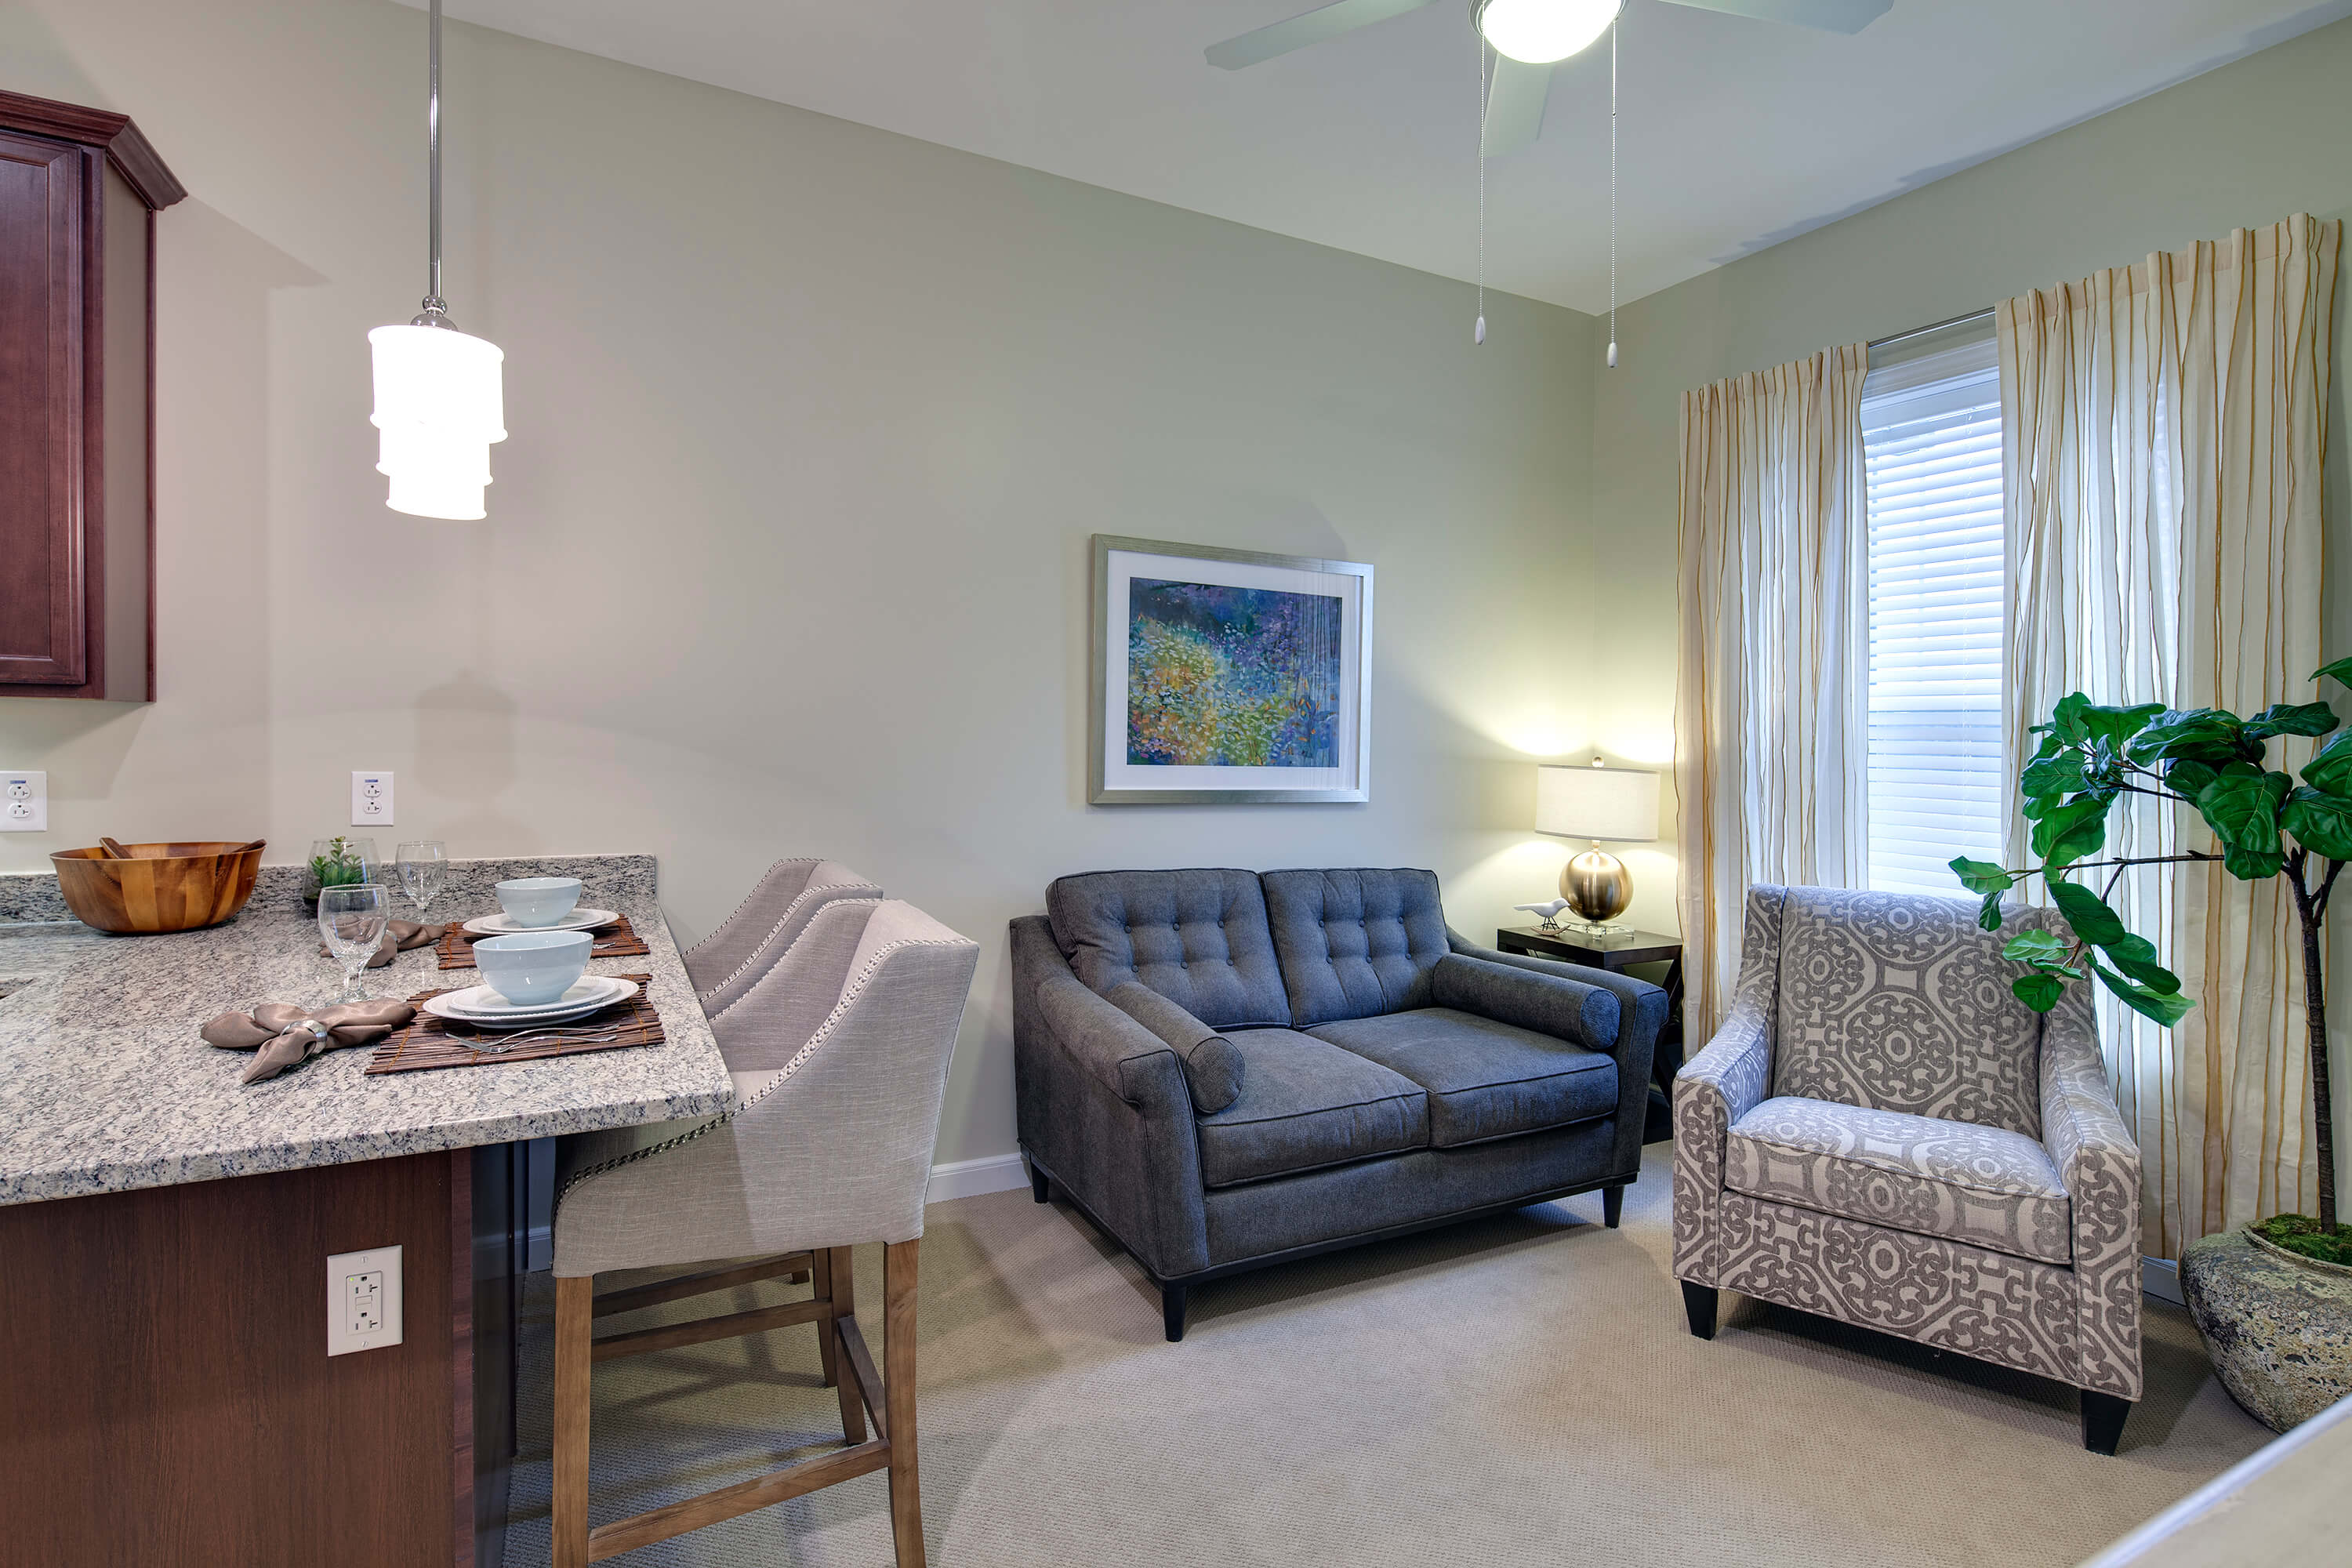 arbor-terrace-of-johns-creek-senior-friendly-design